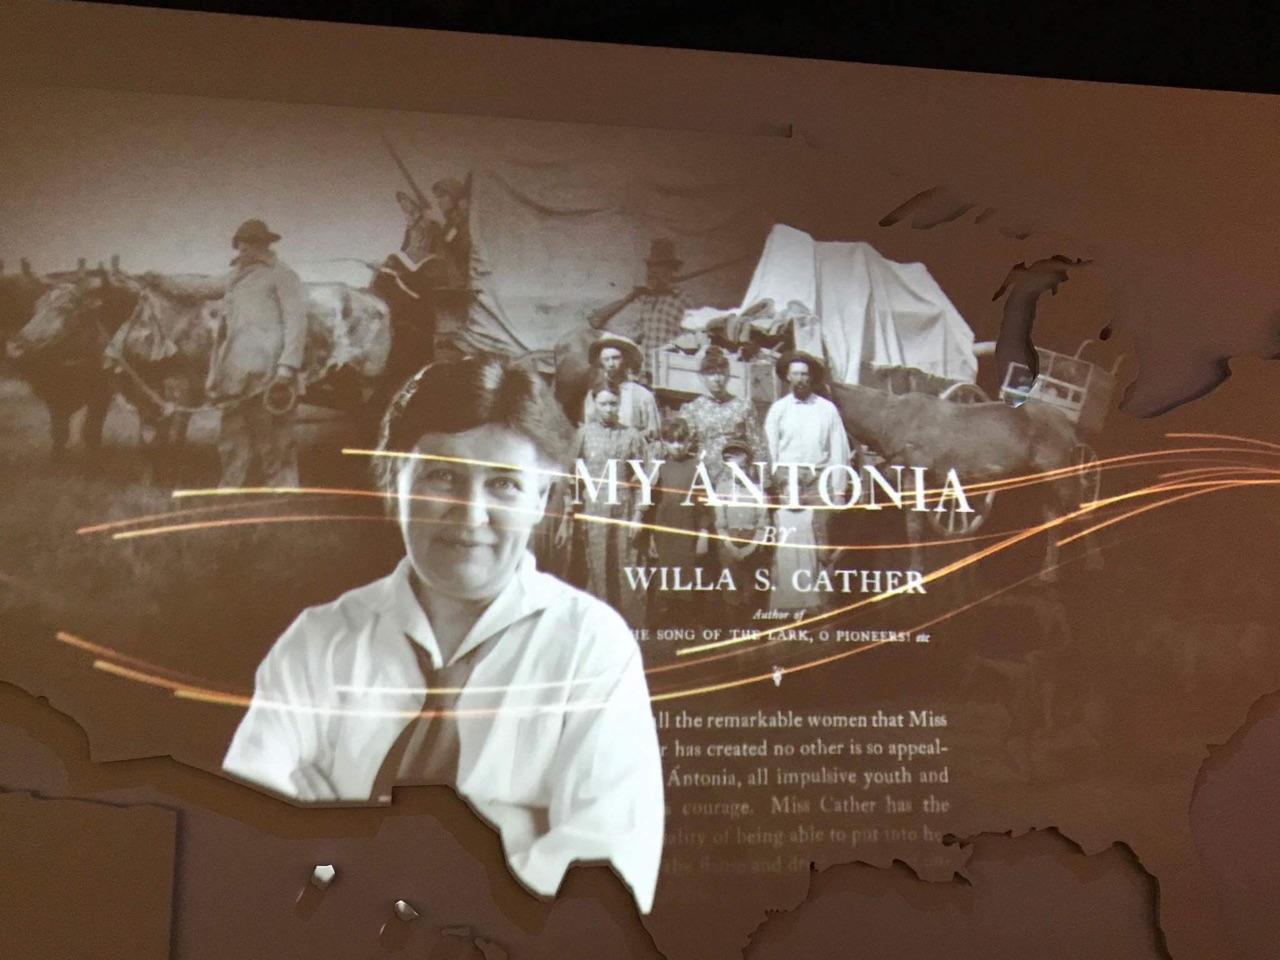 Willa Cather exhibit at the American Writers Museum.